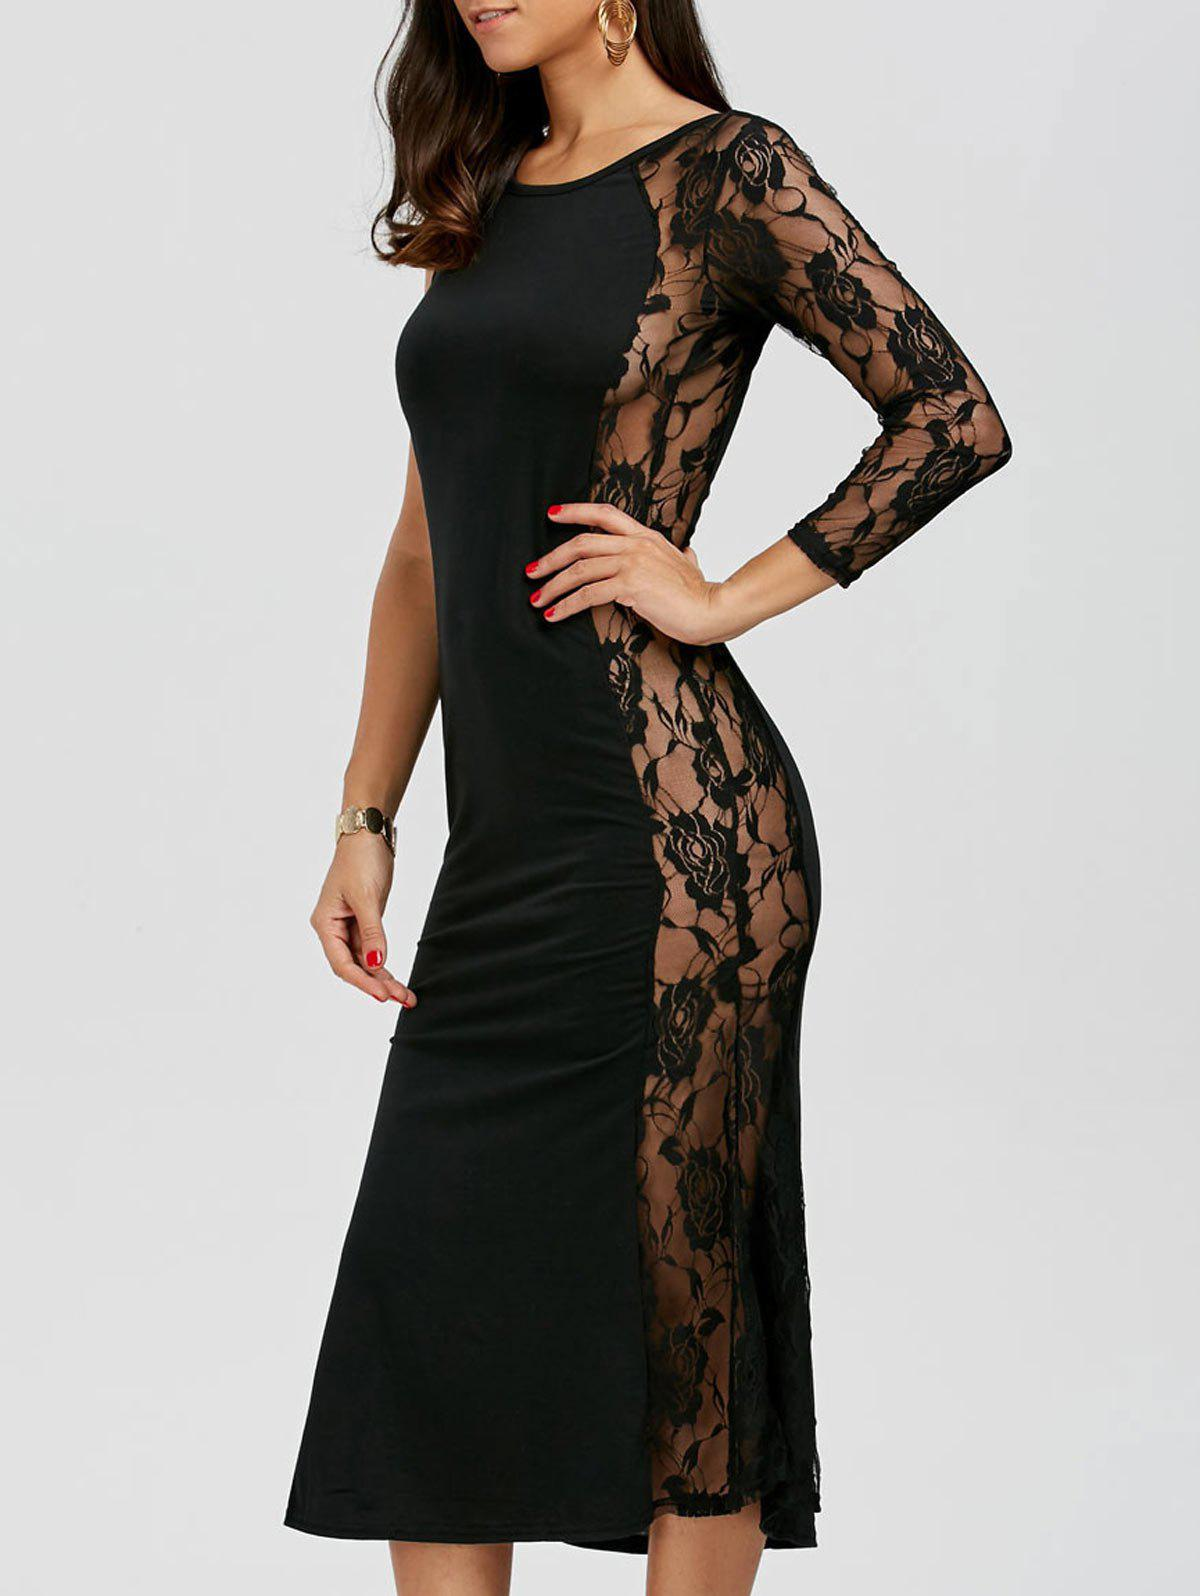 One Sleeve Floral Lace Insert Dress - BLACK L